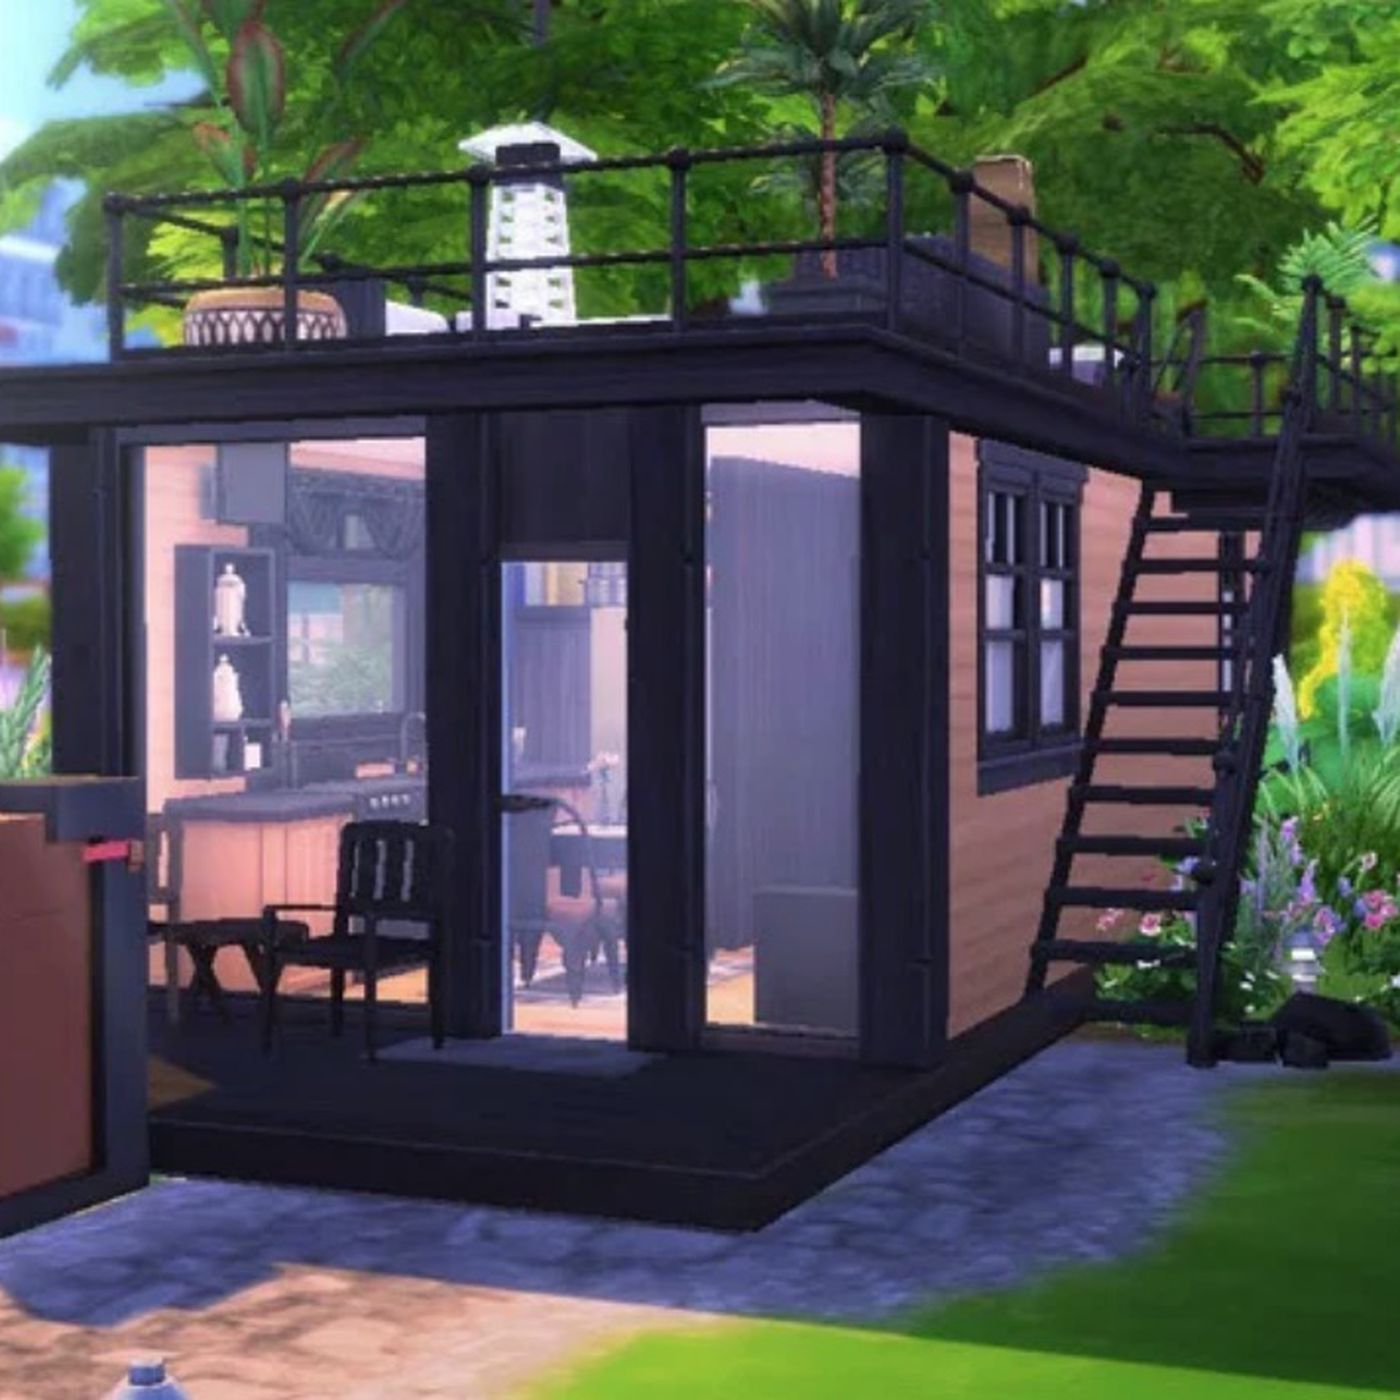 In the Sims 25, tiny houses thrive - Curbed